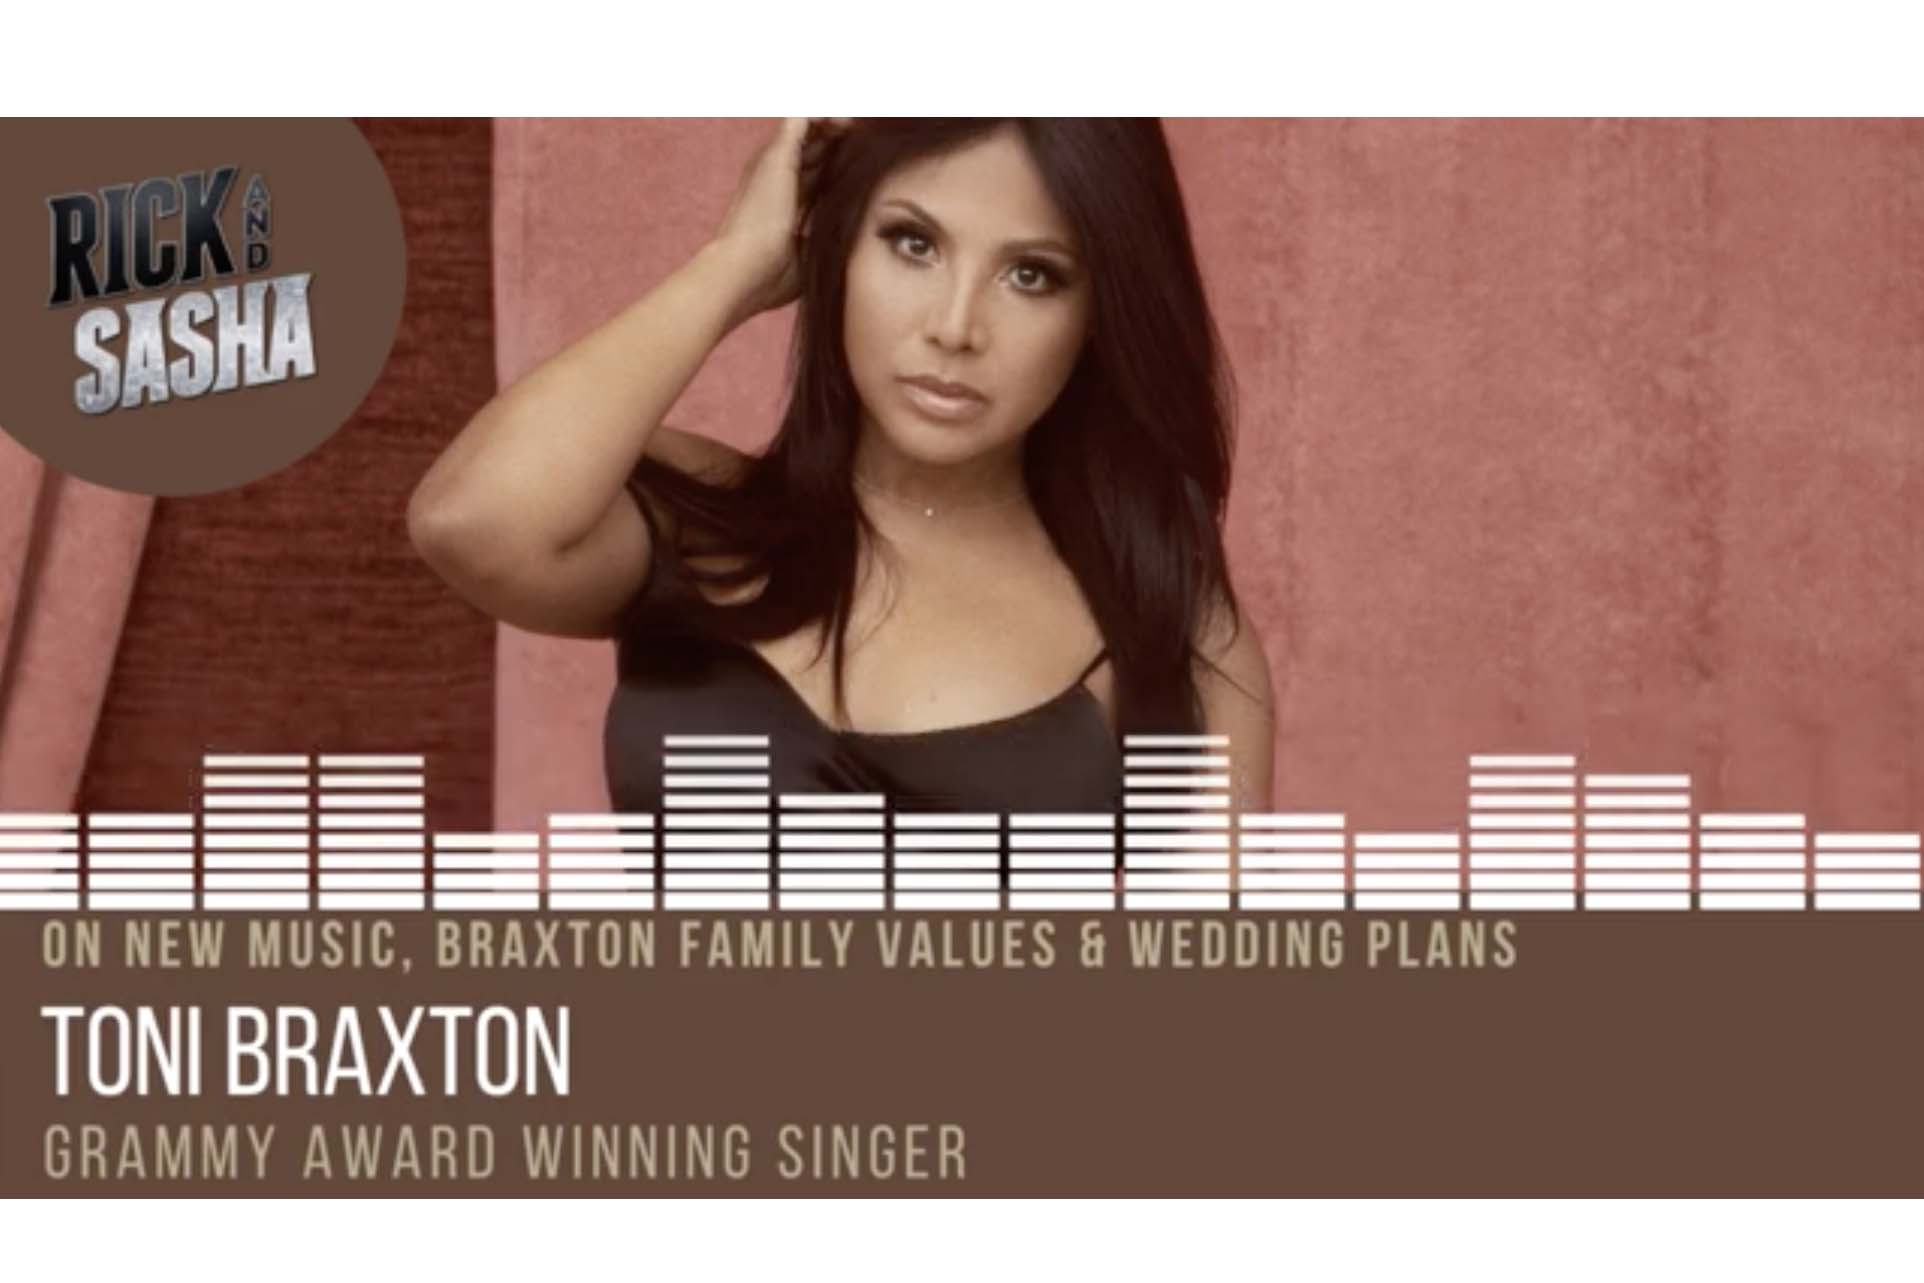 Toni Braxton Is Back With New Music, Wedding Plans & More